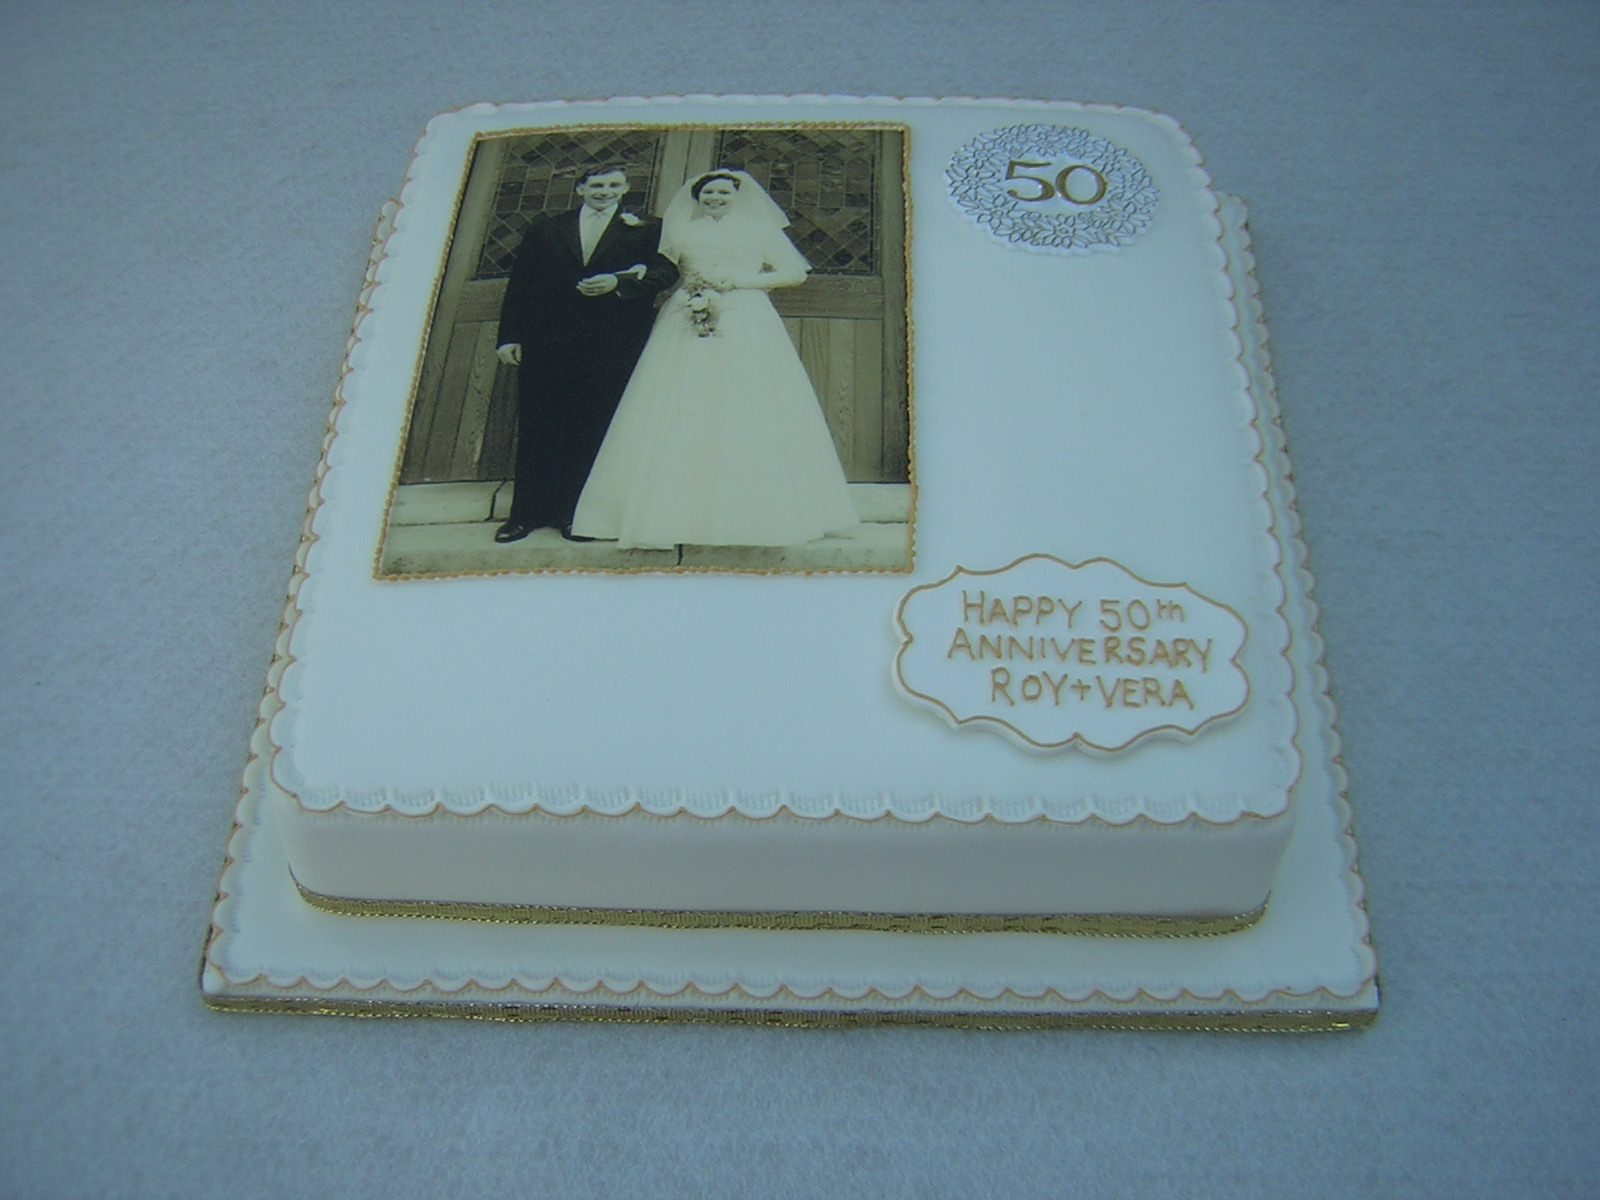 Cake Decorating Ideas For 50th Wedding Anniversary : Anniversary Cakes - Julie s Creative CakesJulie s Creative ...